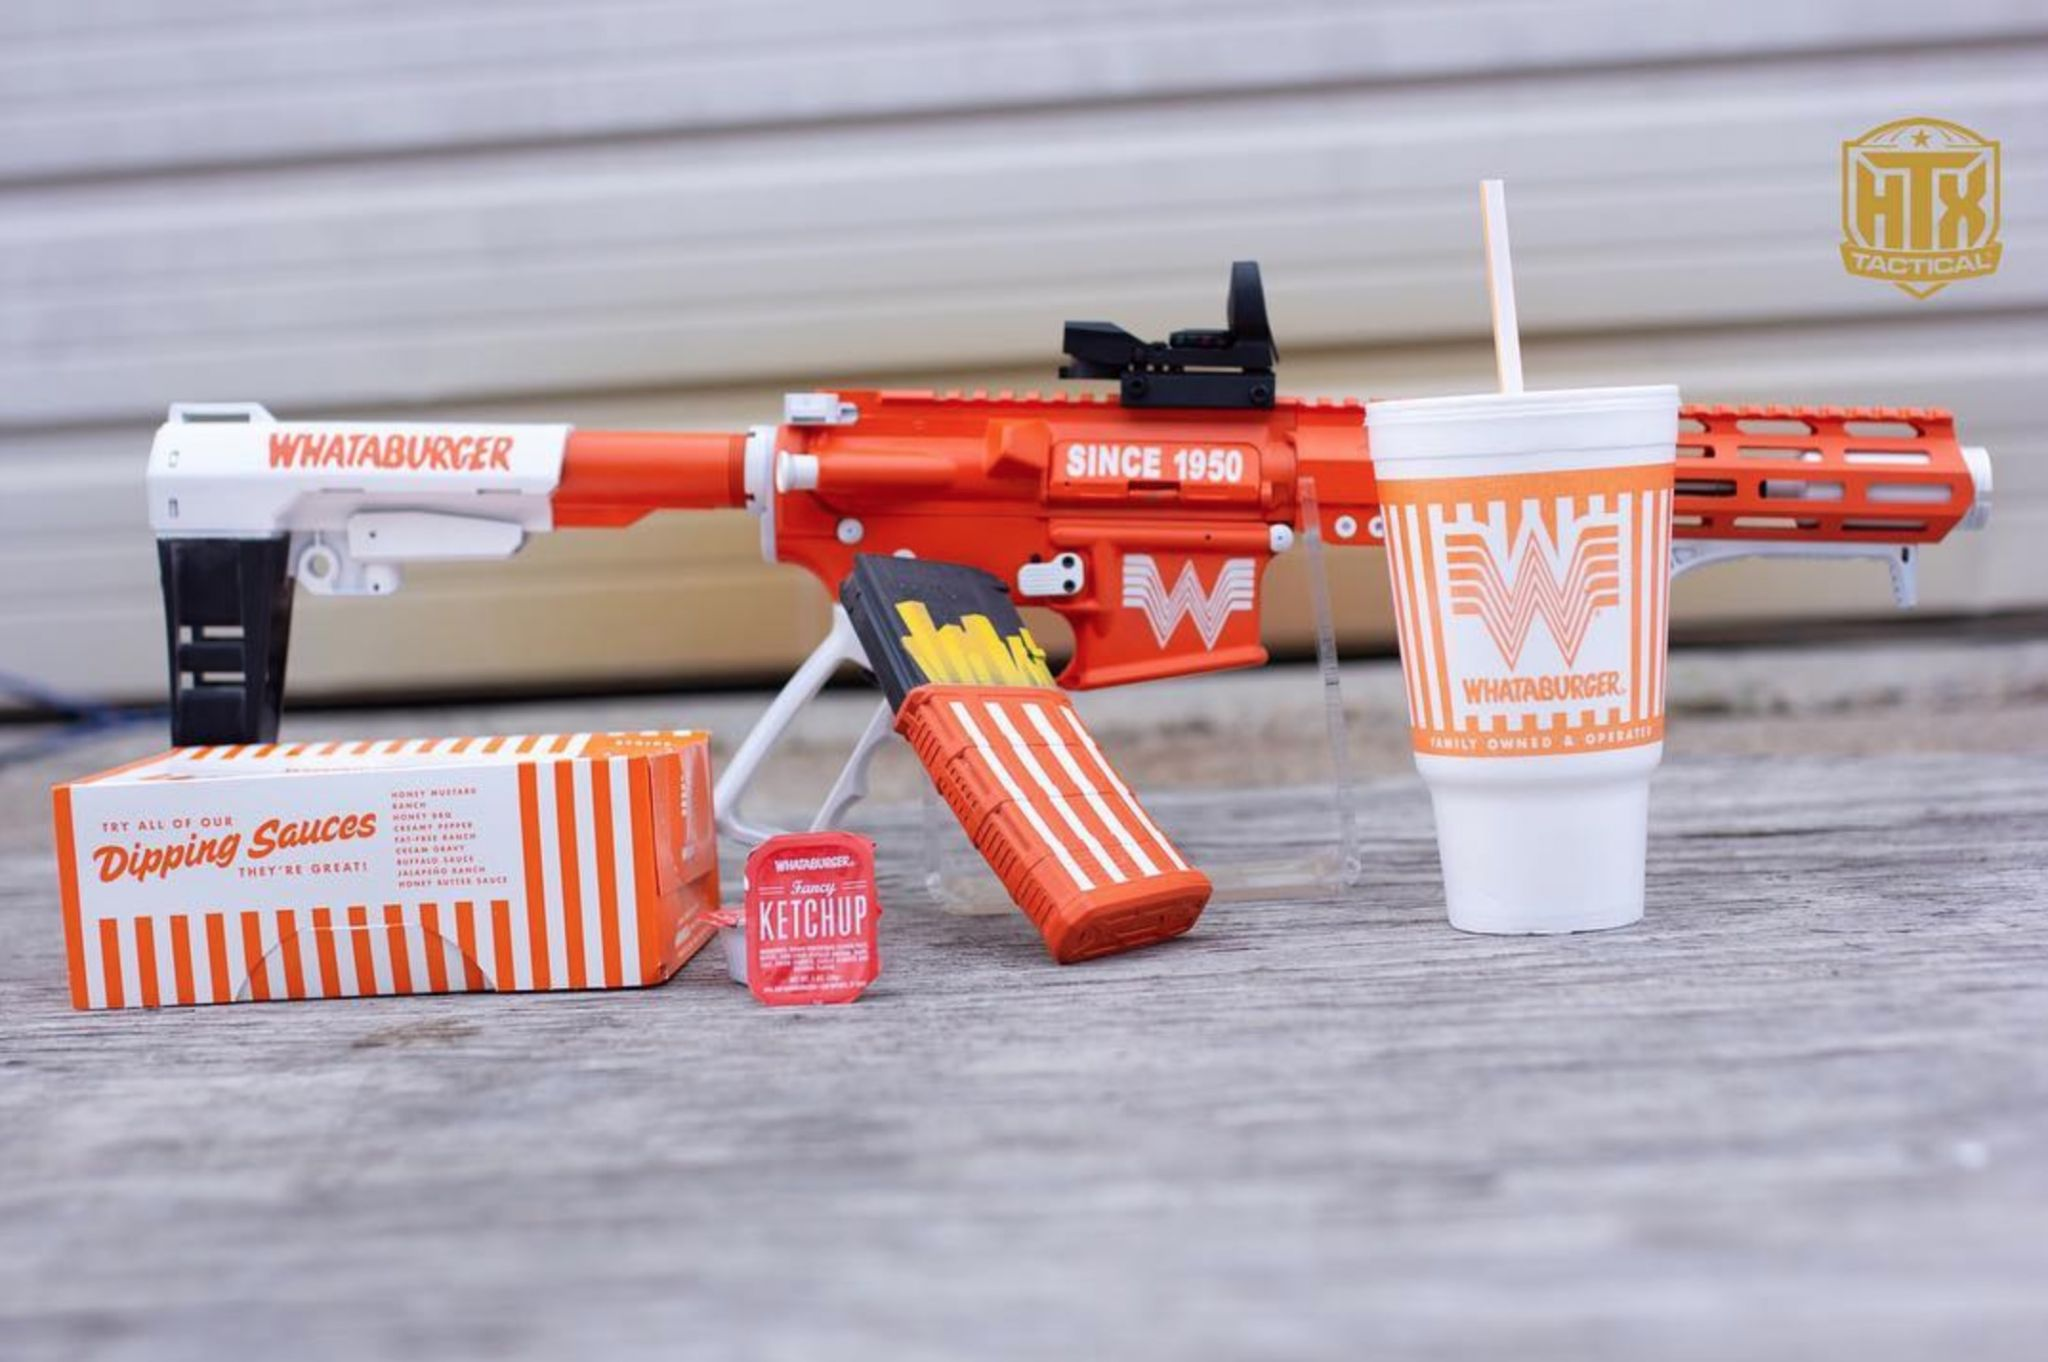 Whata-pistol: Houston gun maker combos Whataburger and firearms, Texas style